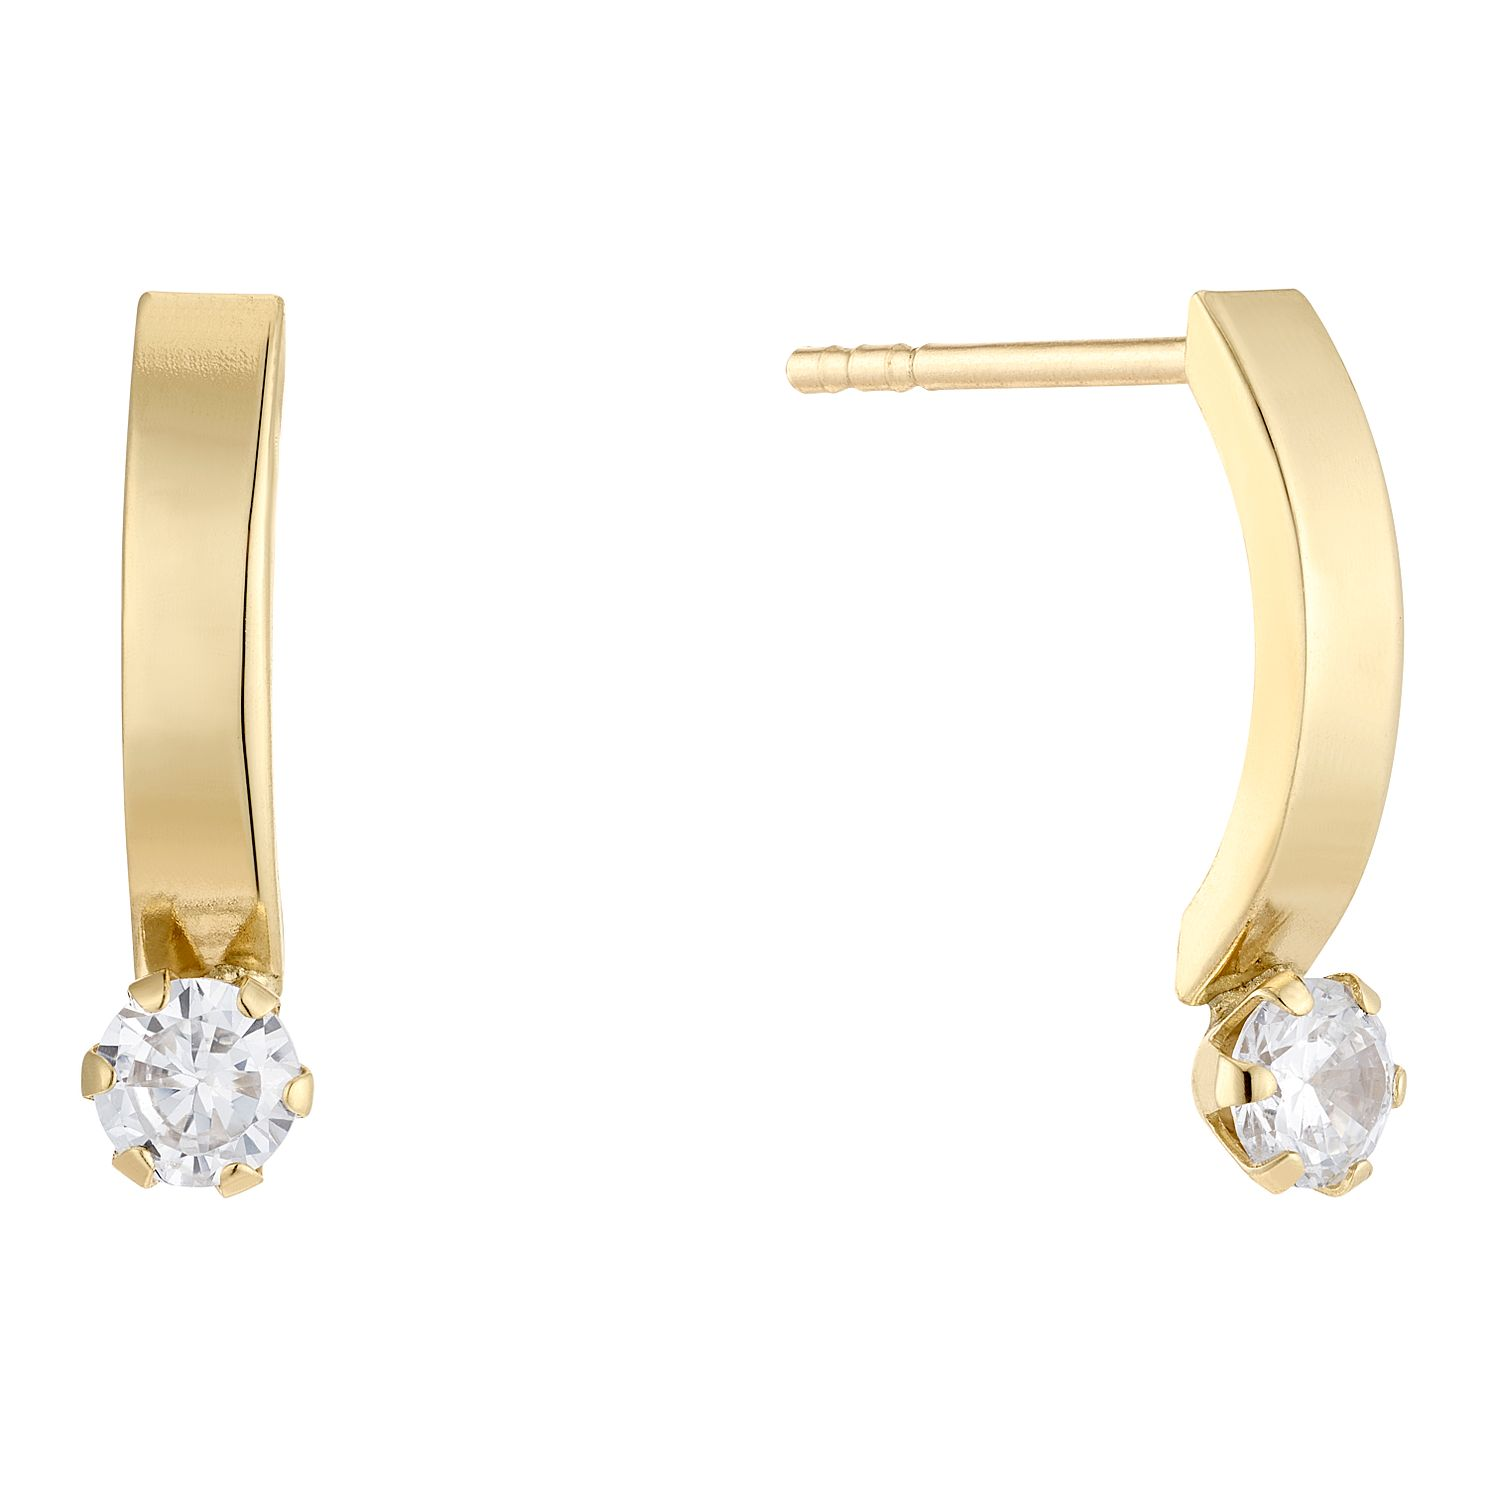 9ct Yellow Gold Cubic Zirconia Curve Bar Stud Earrings - Product number 5123720